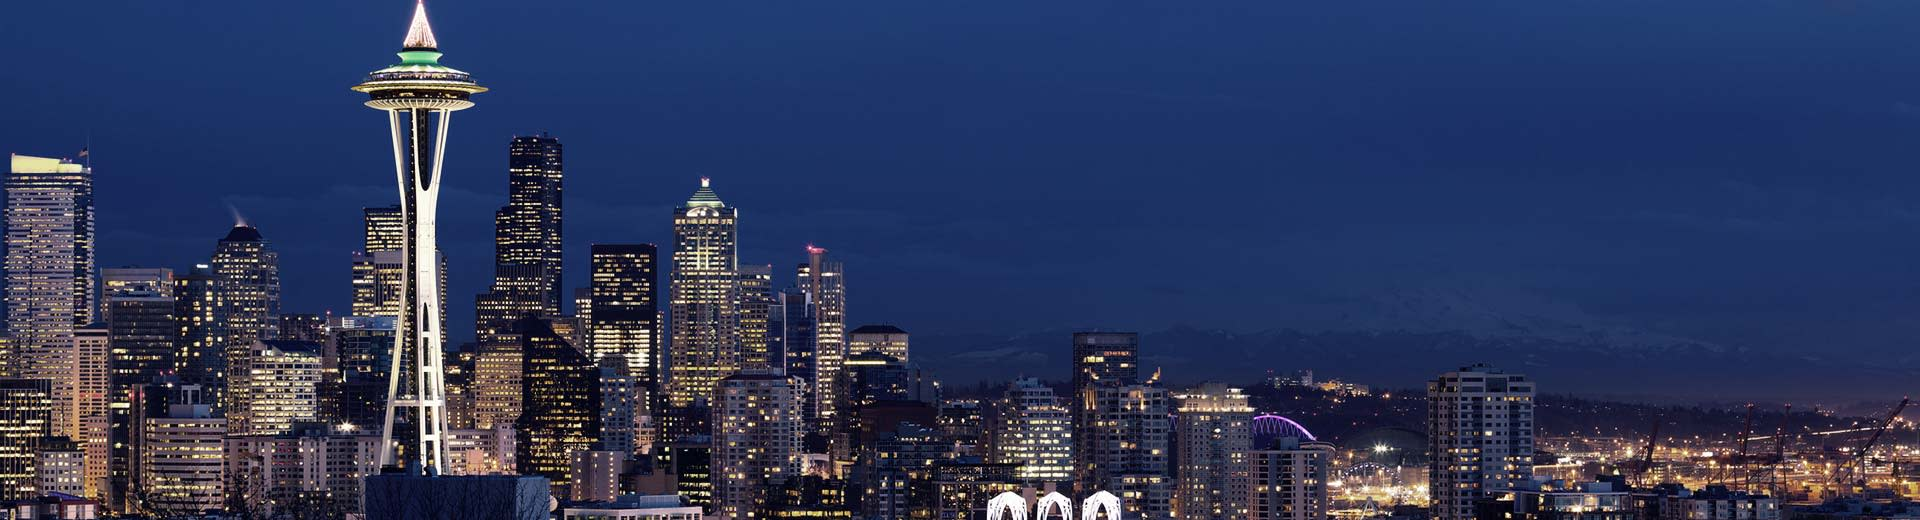 The famous Space Needle of Seattle looms into the nightsky, surrounded by omposing skyscrapers and apartment buildings